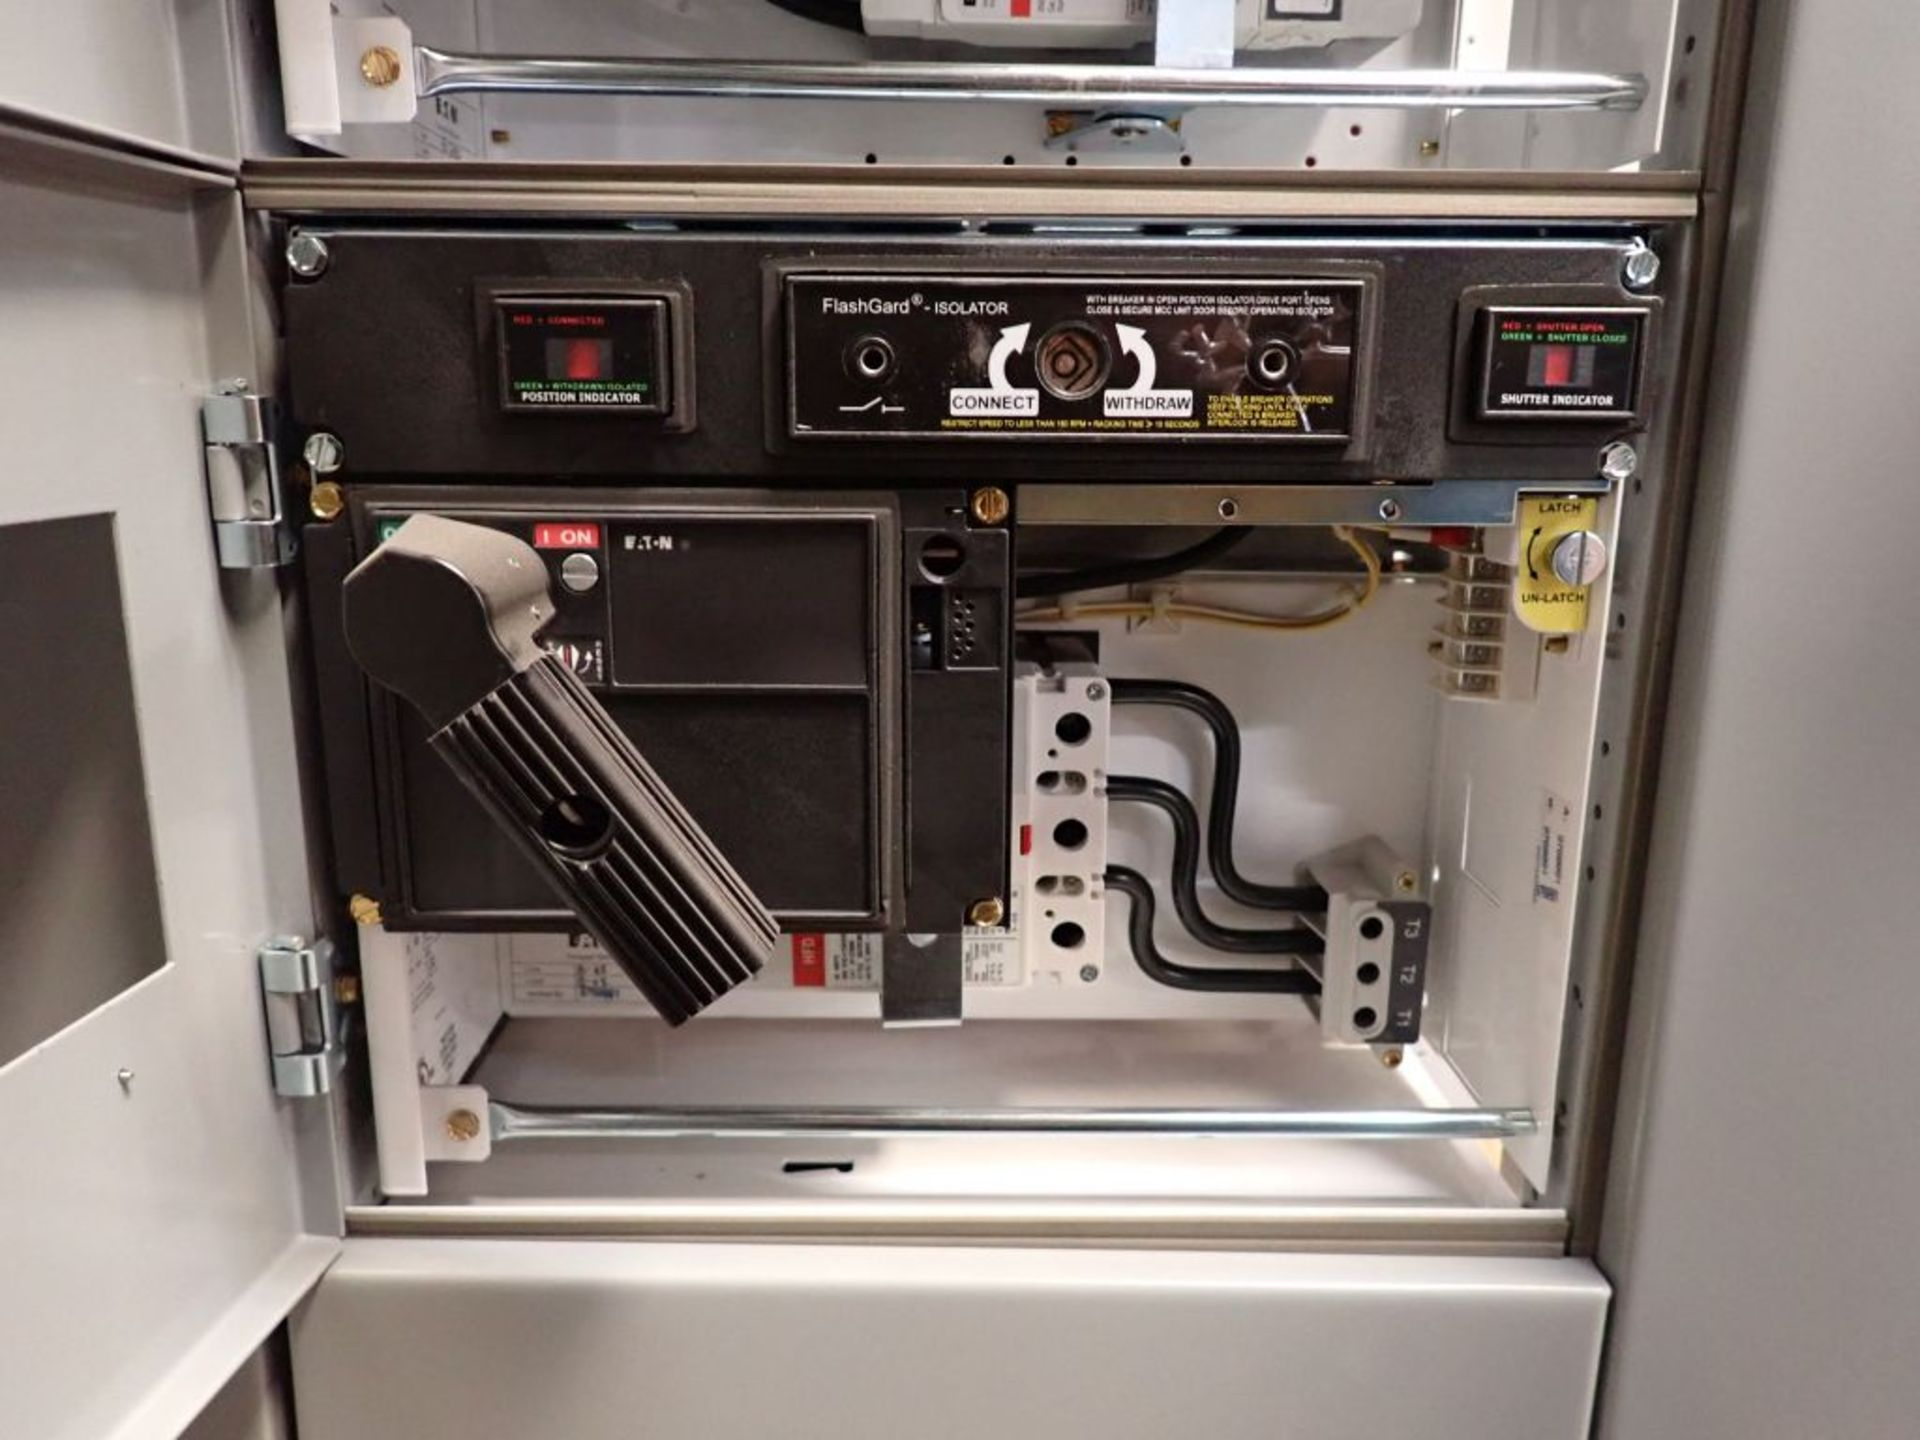 Eaton Freedom Flashgard Motor Control Center   (3) F216-15A-10HP; (1) FDRB-125A, with 150A - Image 55 of 57